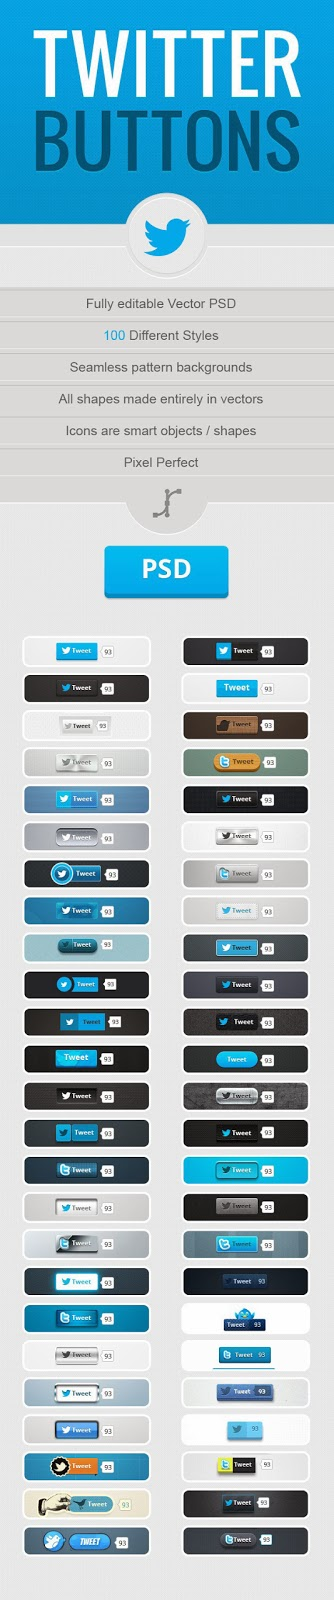 free-Twitter-Buttons